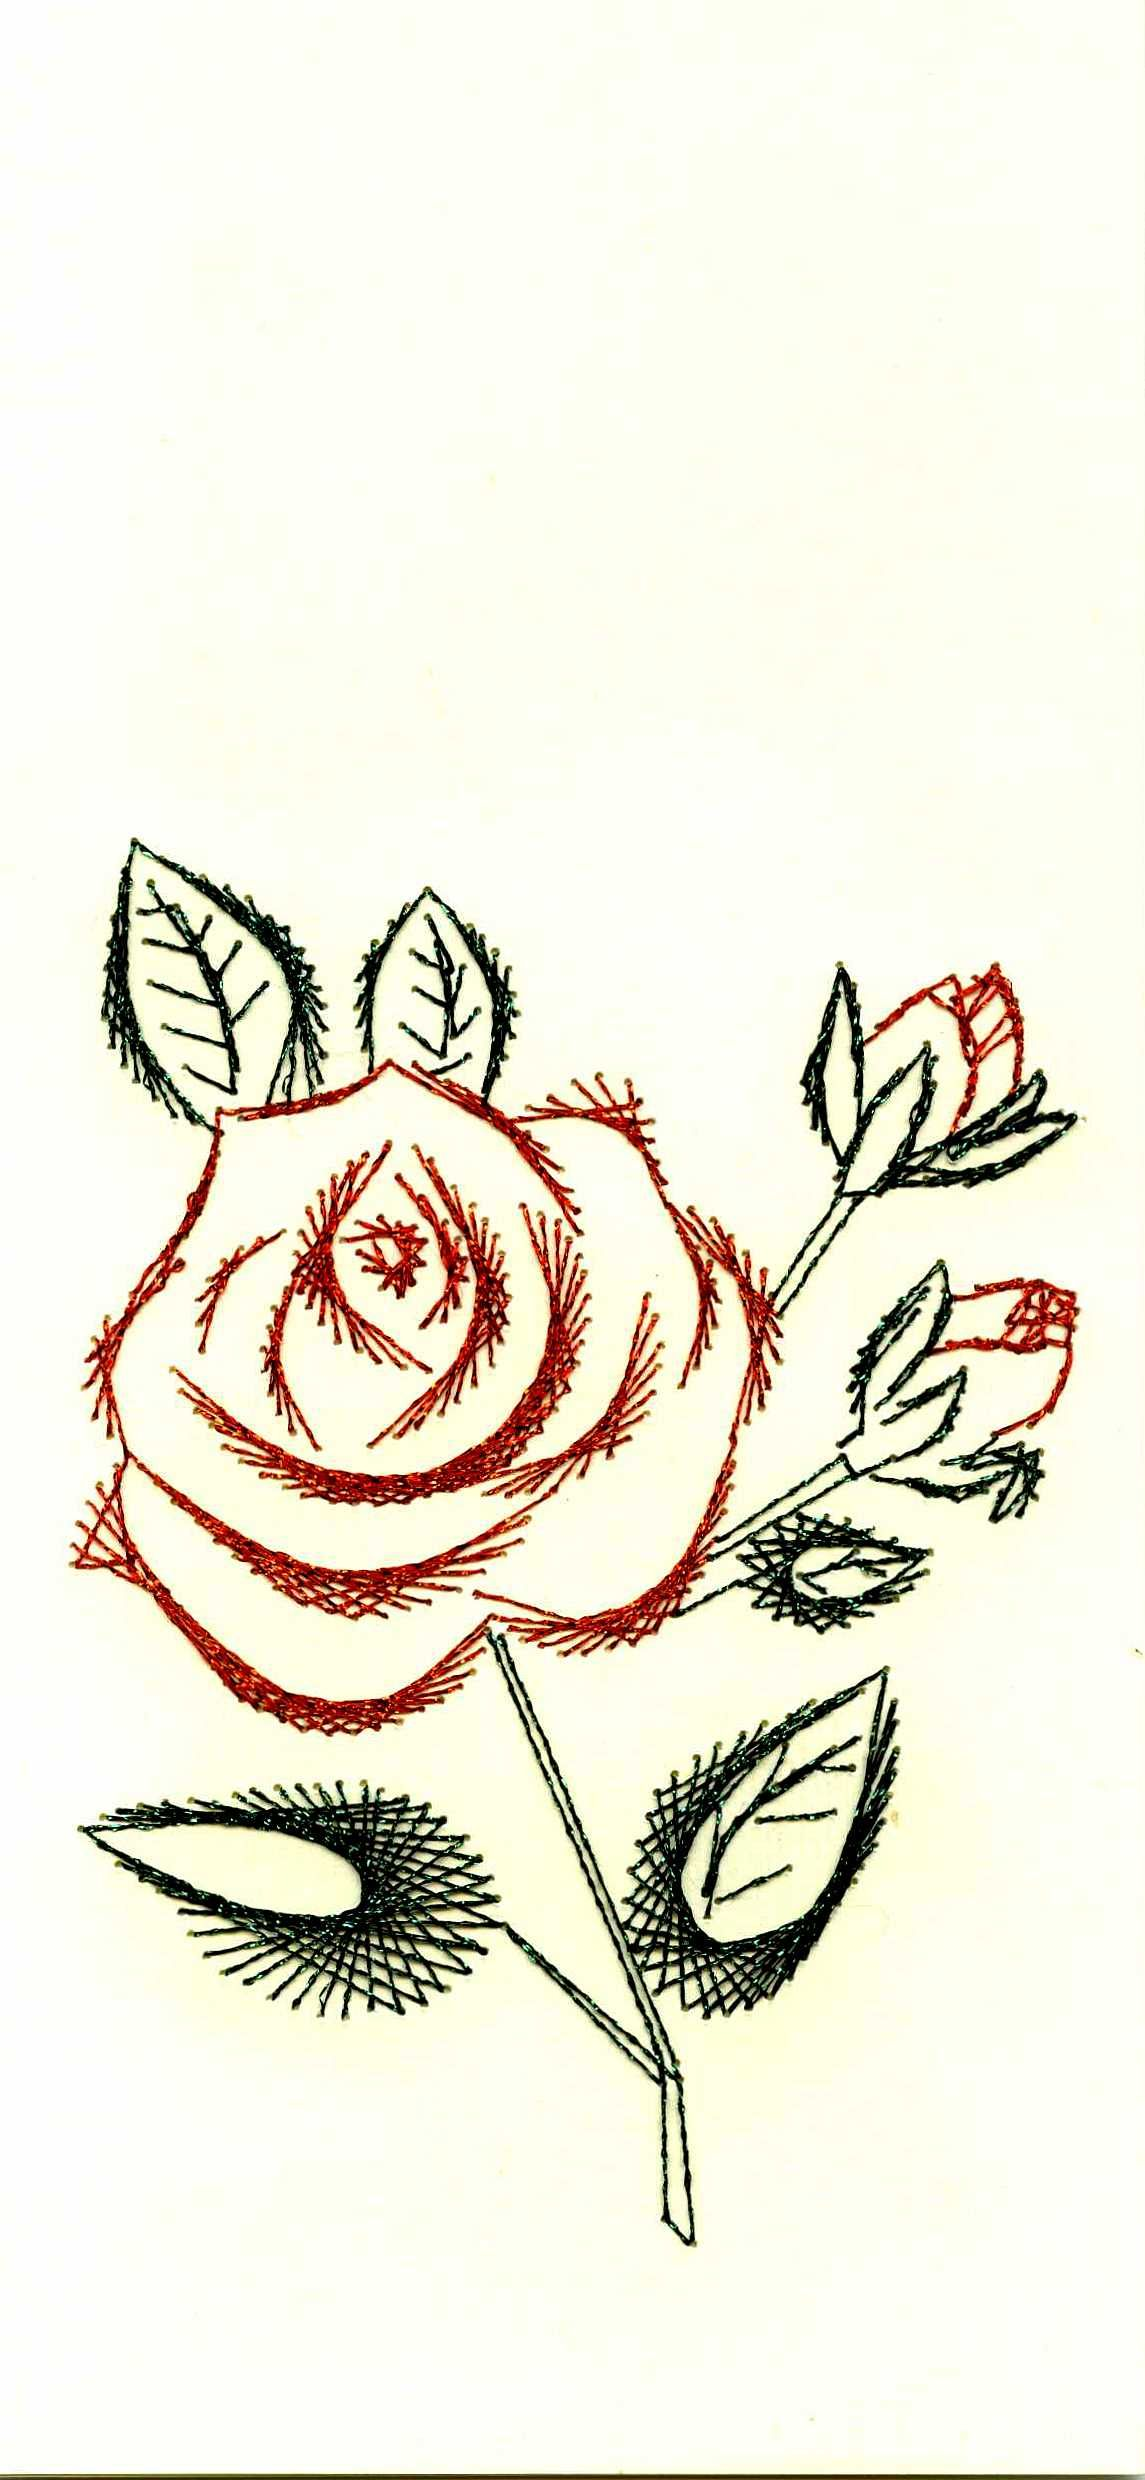 Haft Matematyczny Art Craft Cards Embroidery Cards Paper Embroidery